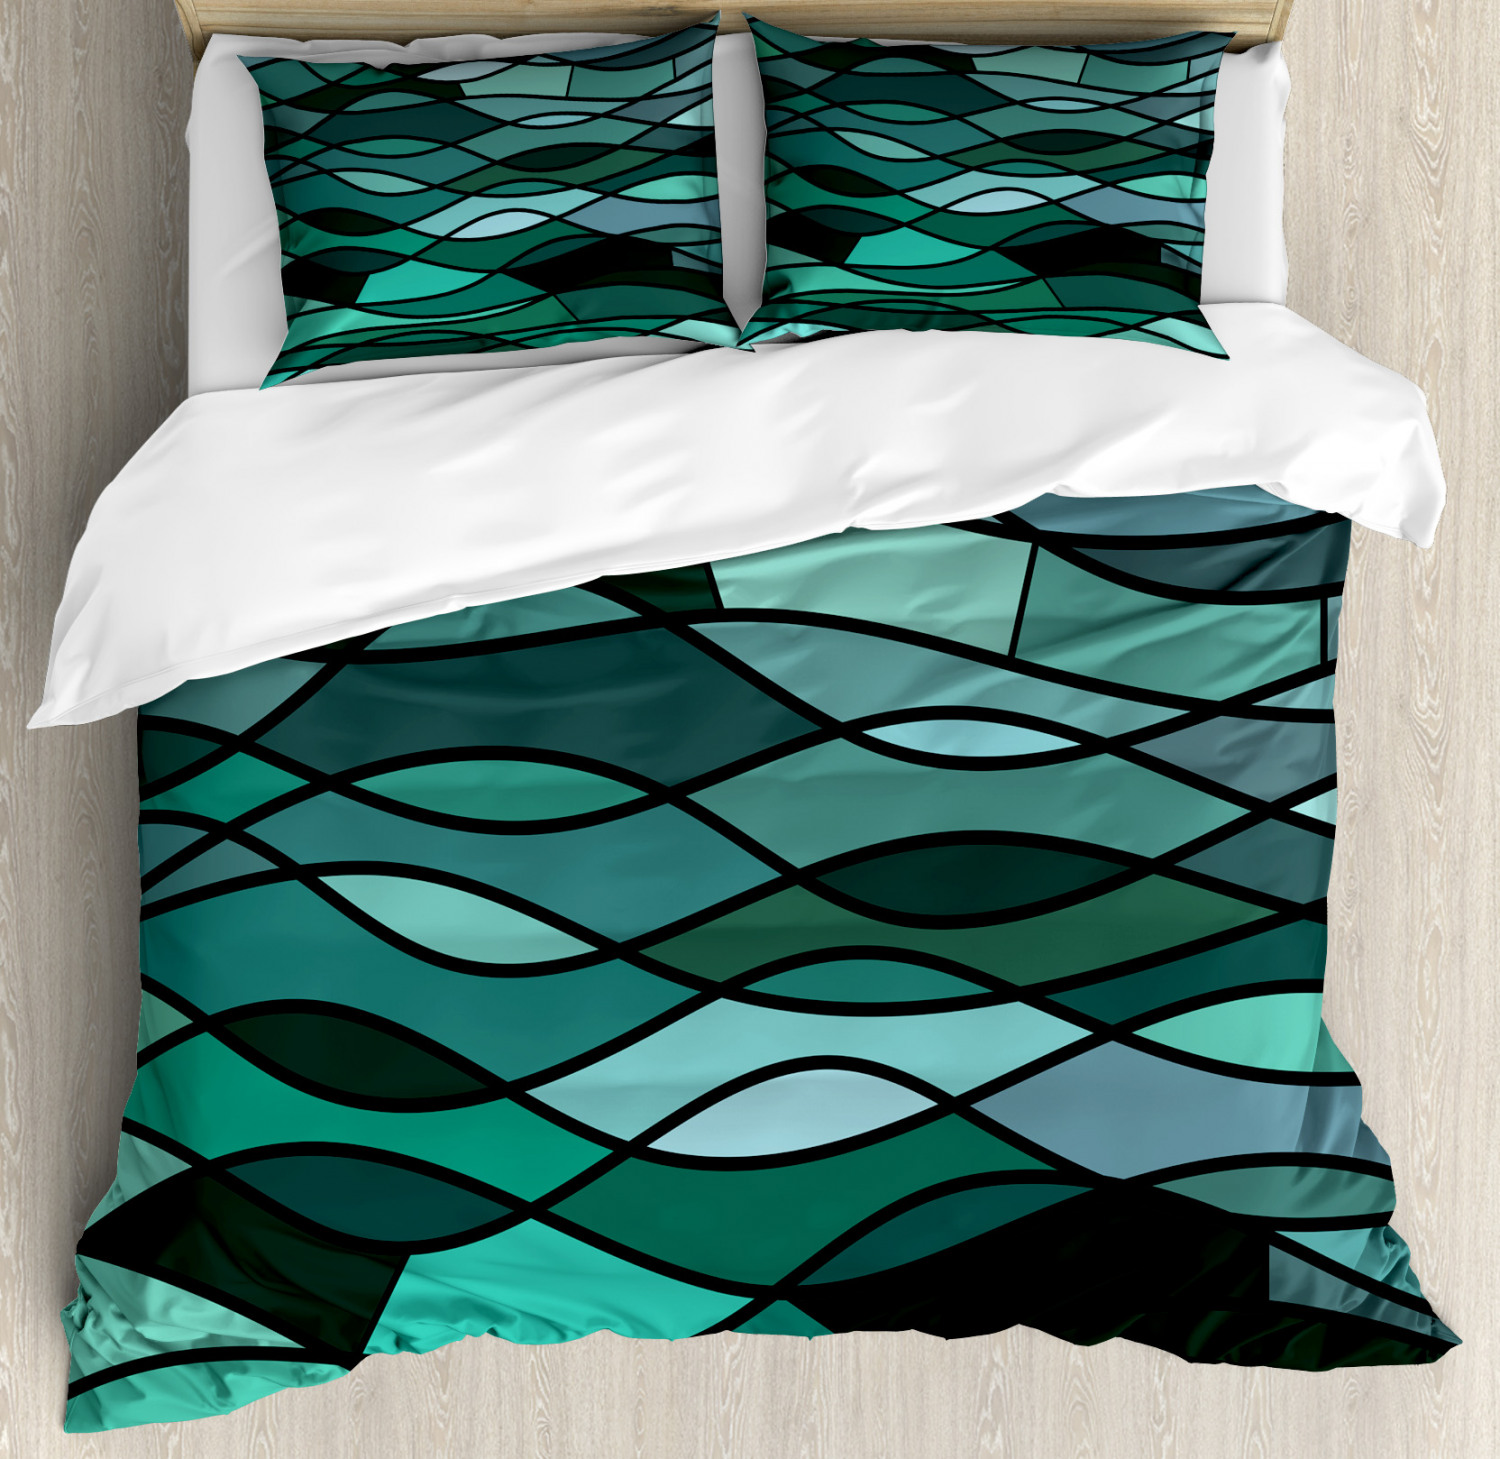 Teal Duvet Cover Set with Pillow Shams Mosaic Sea Waves Inspired Print